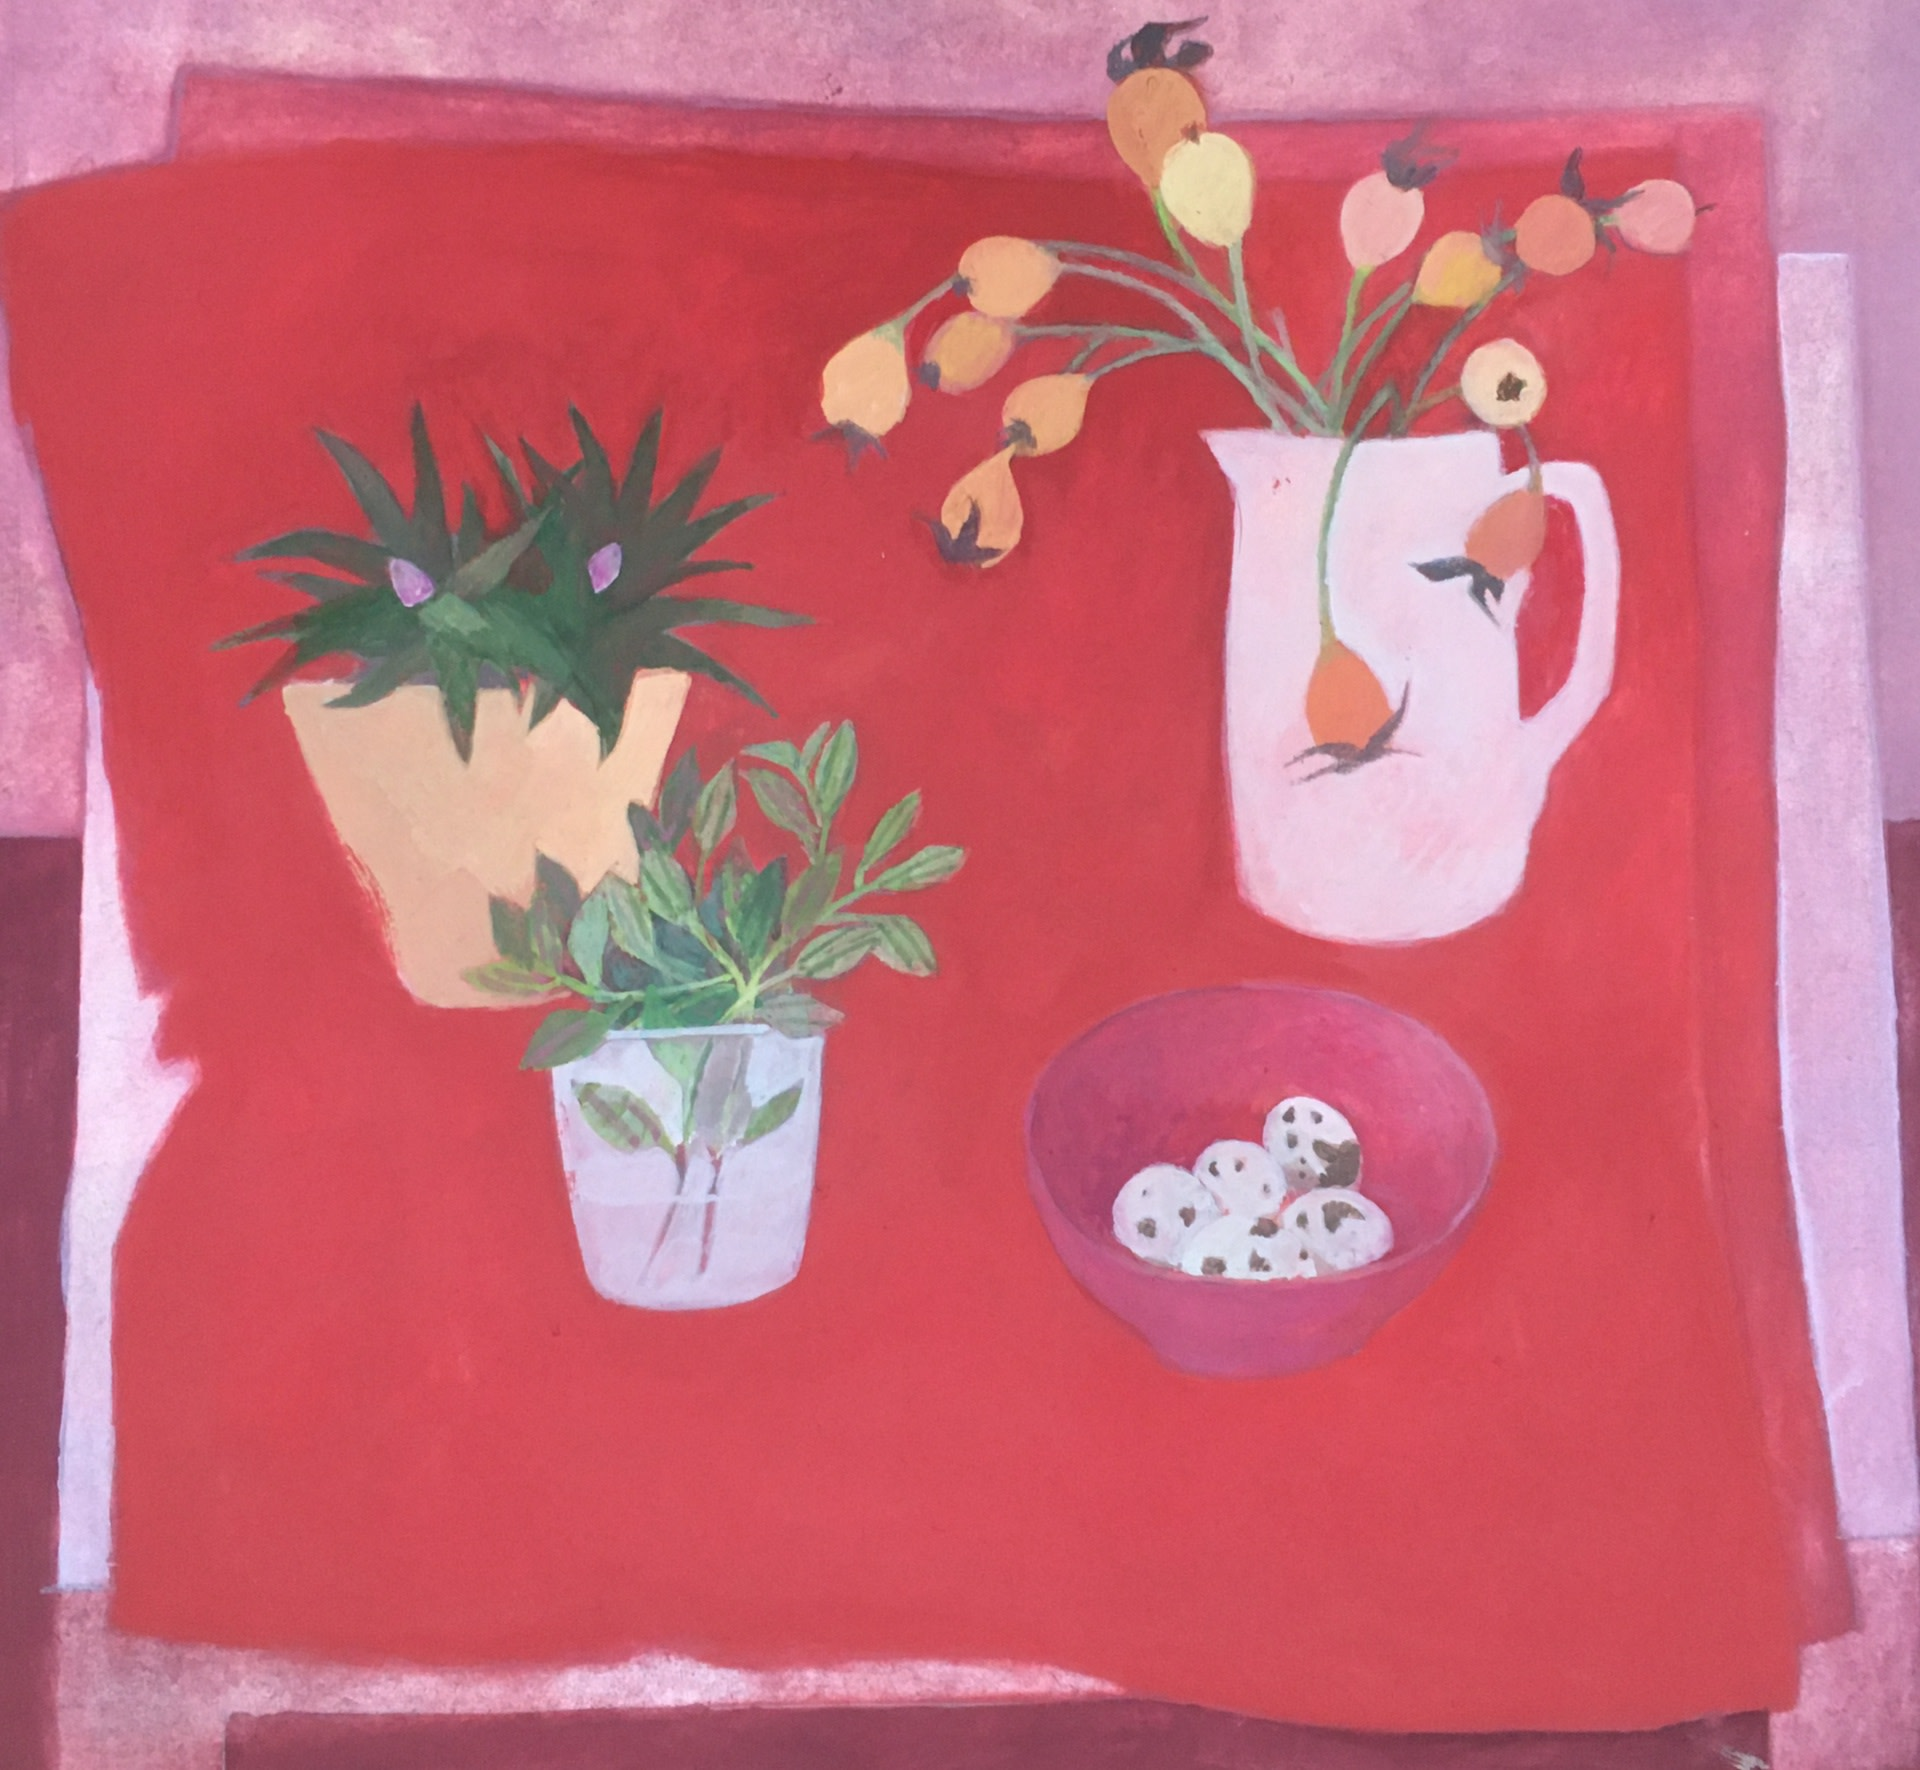 """<span class=""""link fancybox-details-link""""><a href=""""/artists/74-wendy-jacob/works/12633-wendy-jacob-hips-on-a-red-cloth/"""">View Detail Page</a></span><div class=""""artist""""><span class=""""artist""""><strong>Wendy Jacob</strong></span></div><div class=""""title""""><em>Hips on a Red Cloth</em></div><div class=""""medium"""">gouache</div><div class=""""dimensions"""">Artwork: 32 x 28cm</div><div class=""""price"""">£550.00</div>"""